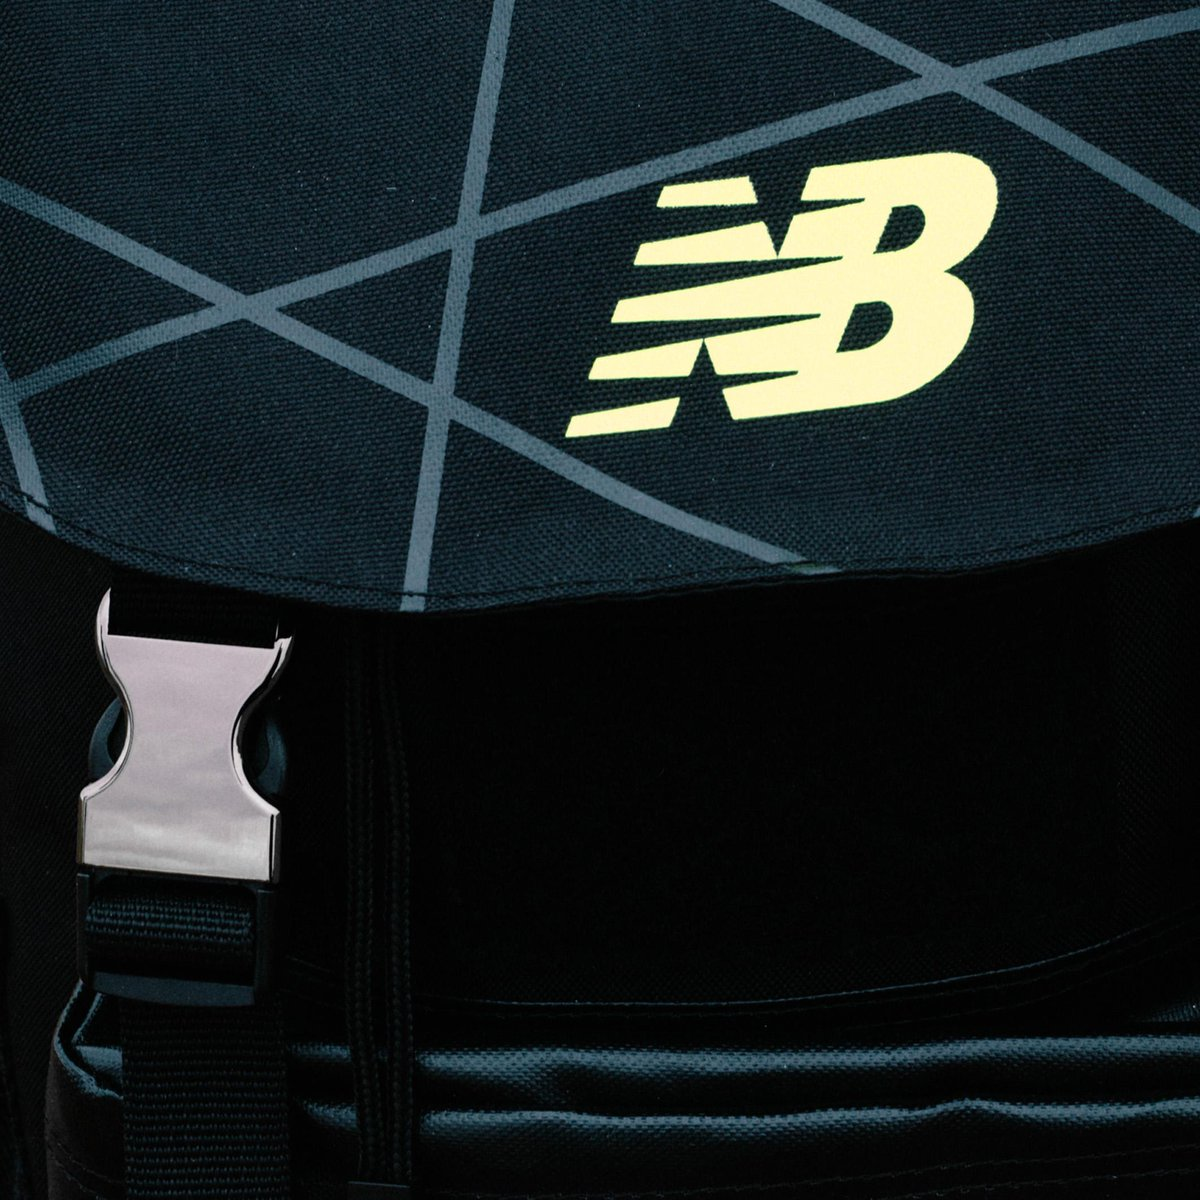 SNEAK PEEK: The 2015 #NBNationals backpack. We'll reveal the full bag tomorrow via Periscope @ 5pm EST. Stay tuned... http://t.co/63QXtfrY9d